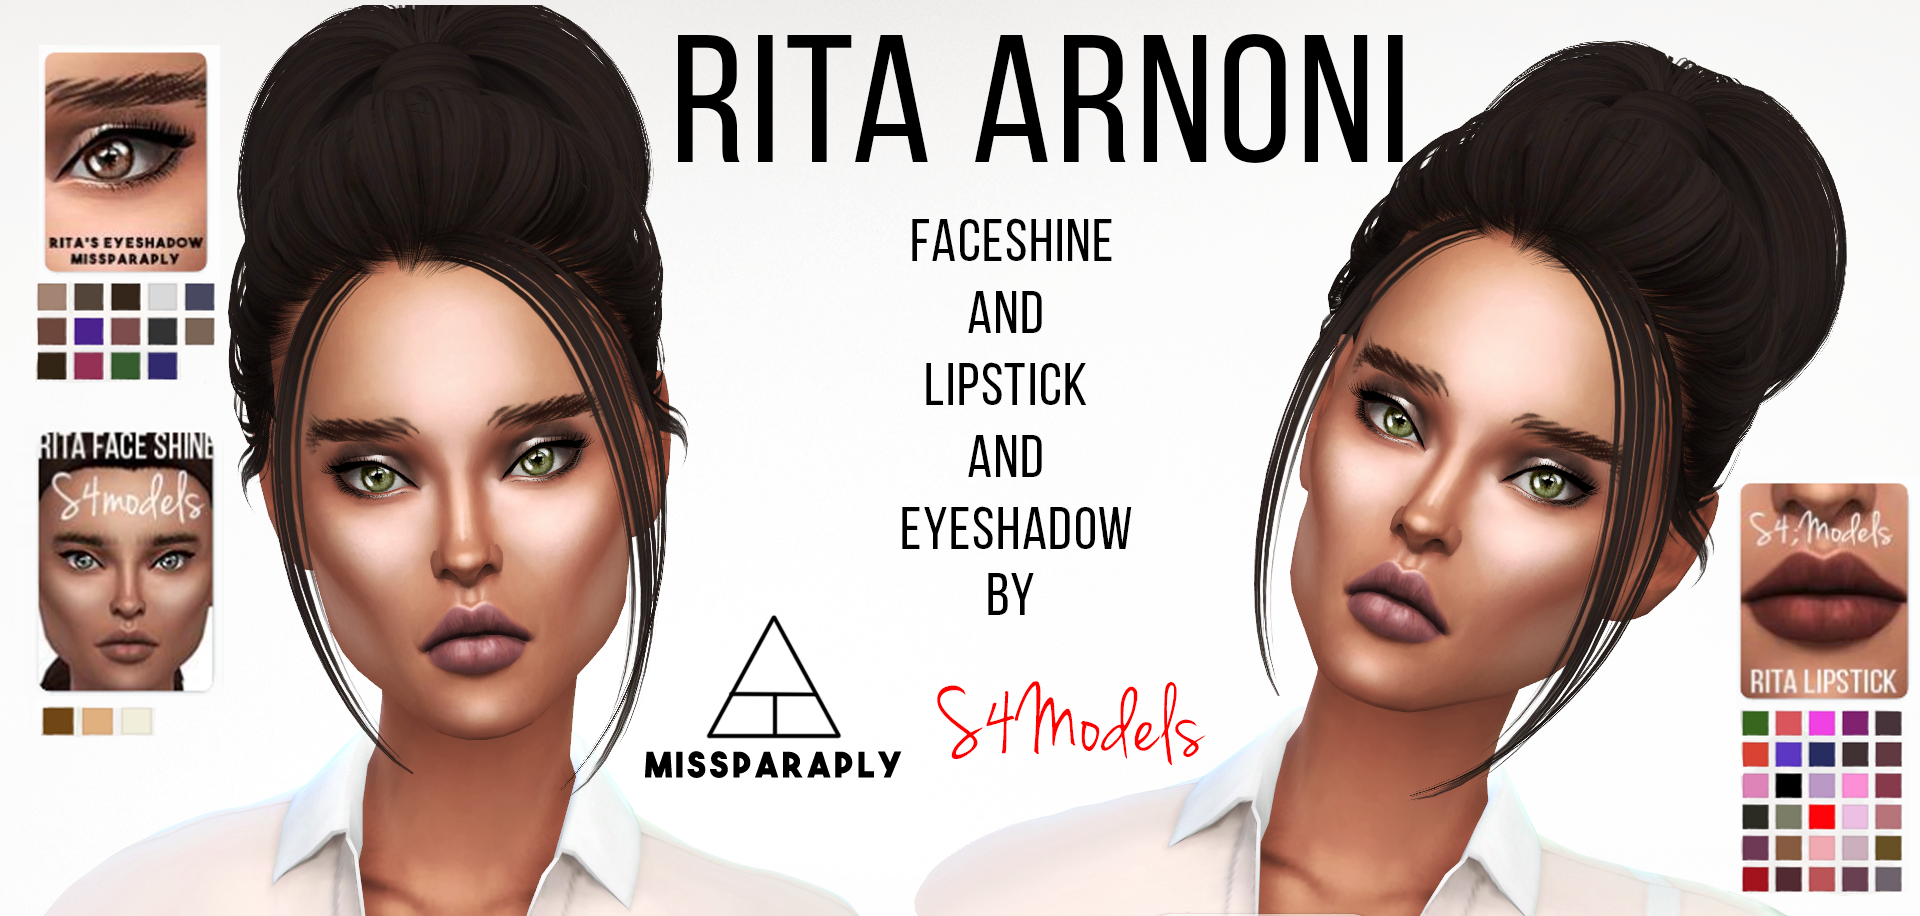 Rita Lipstick and FaceShine от S4Models